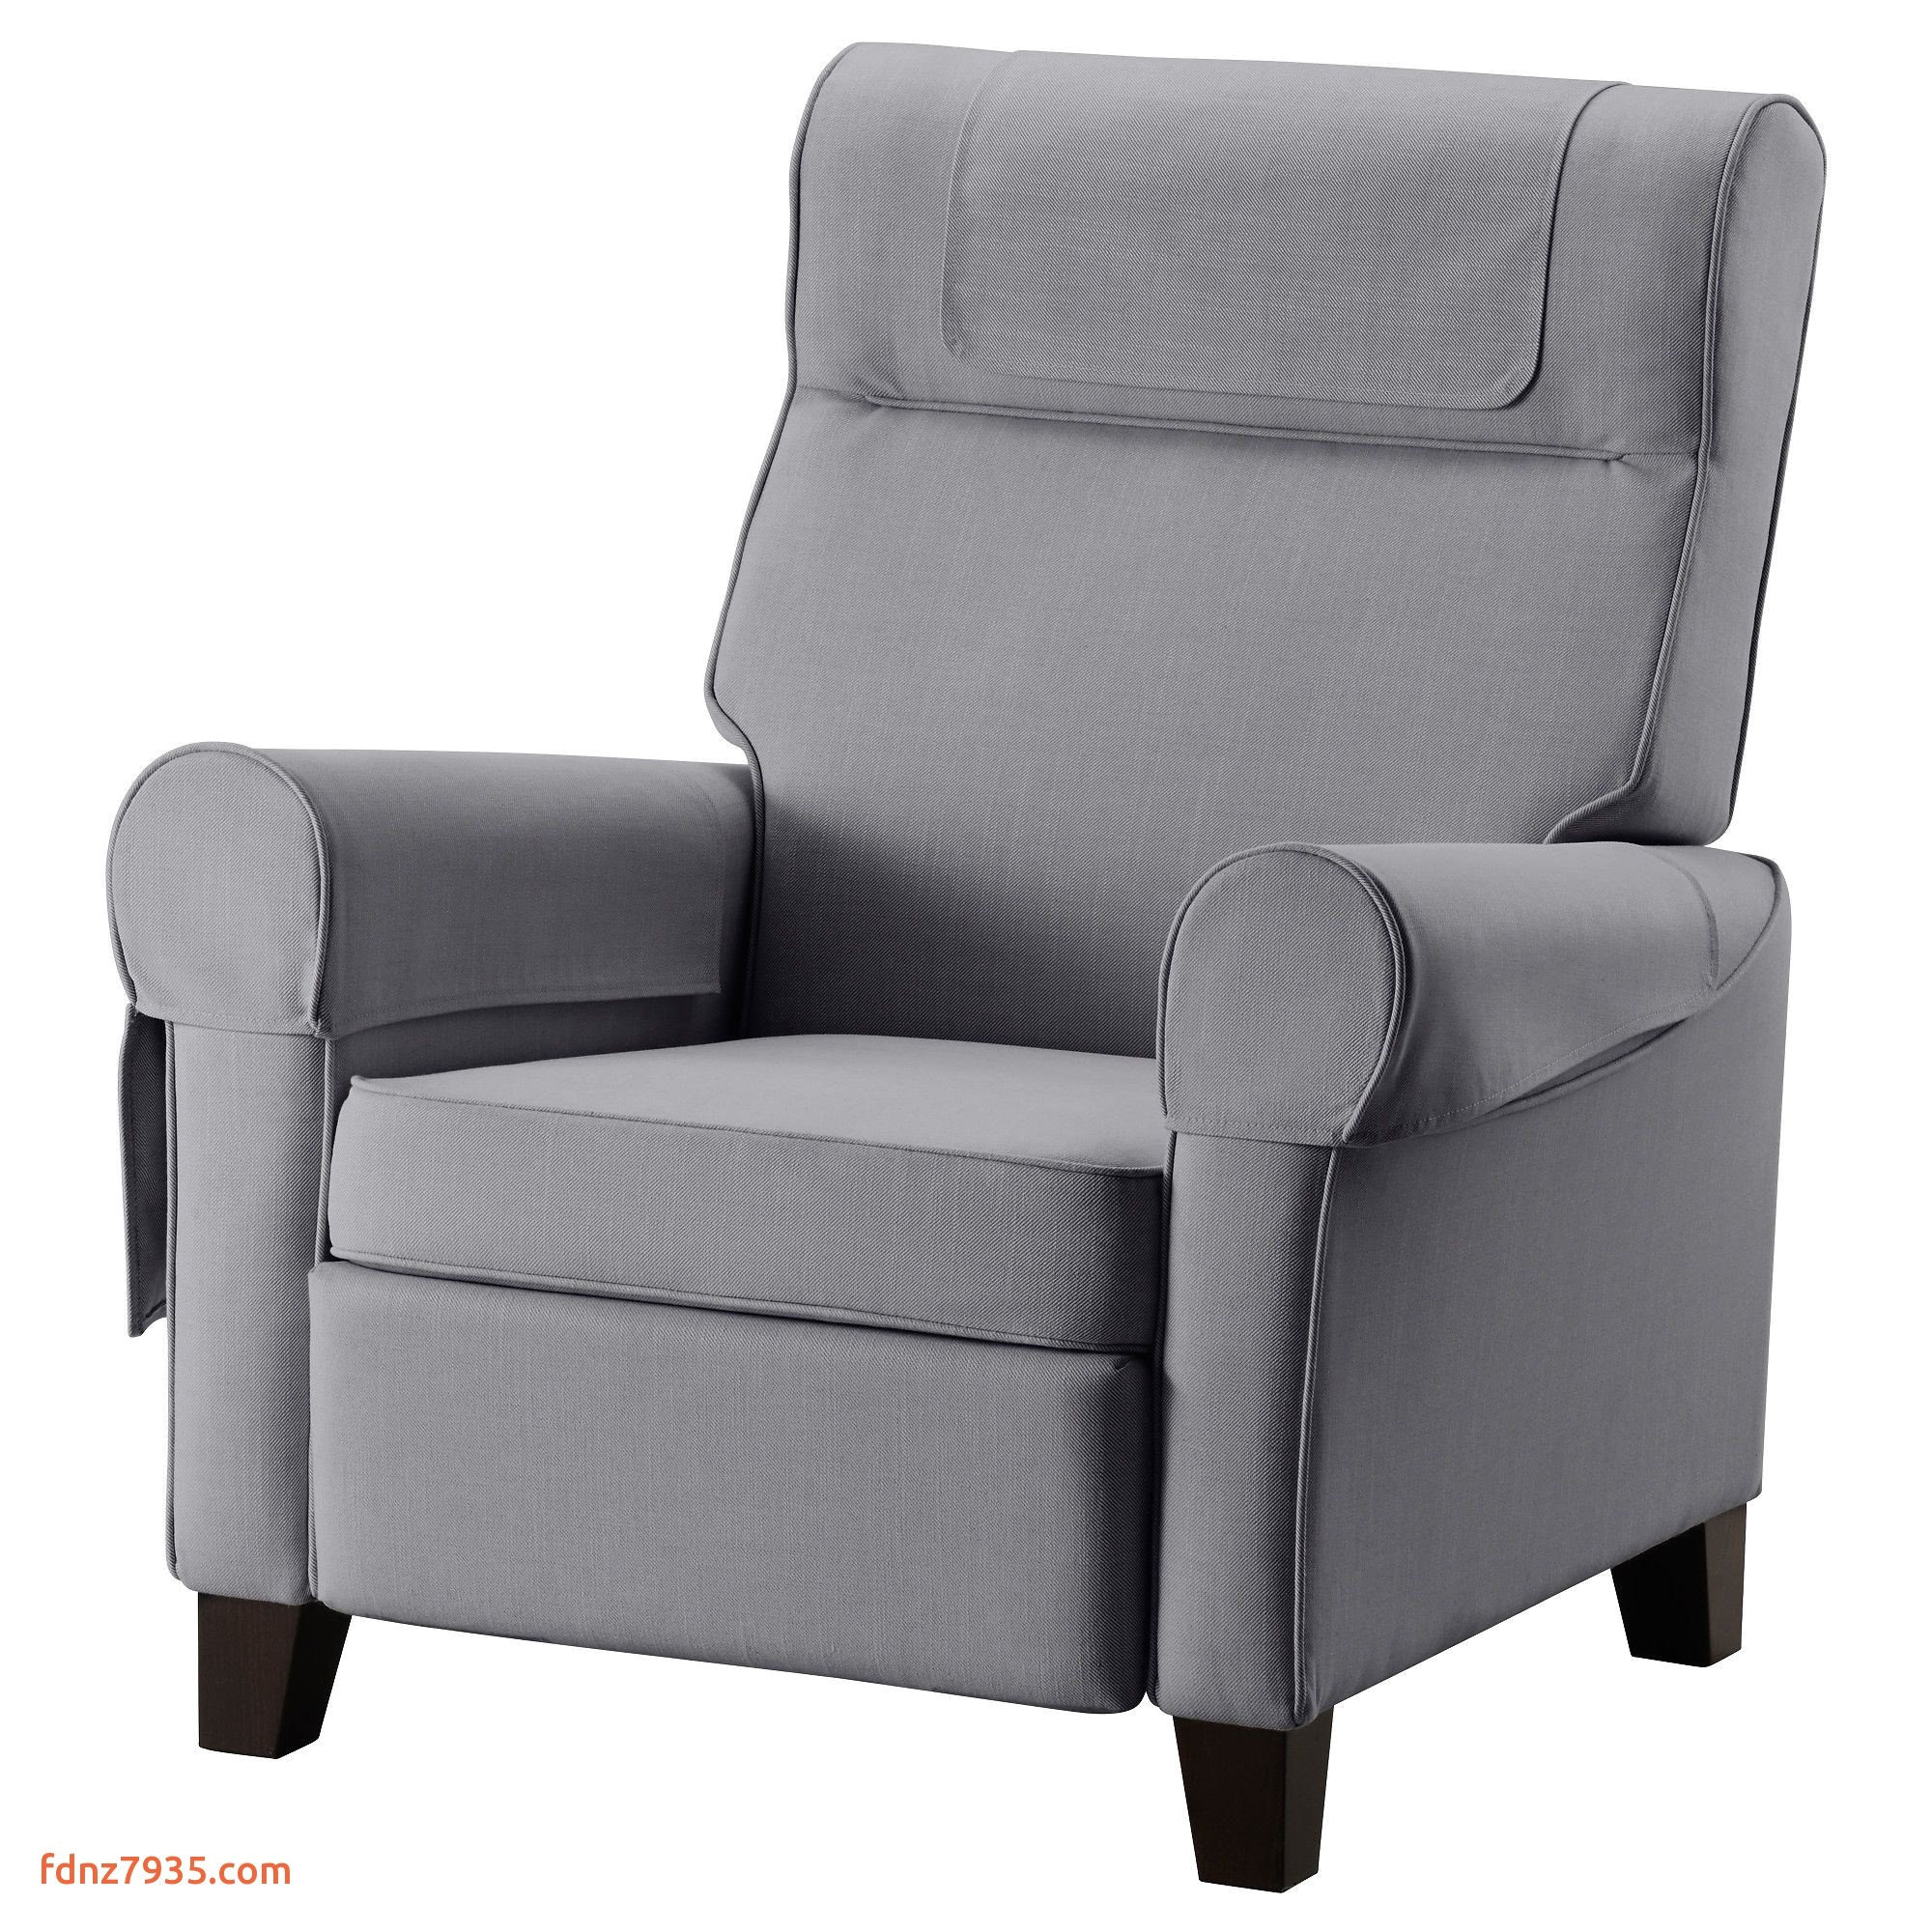 recliner chair ikea visit more at